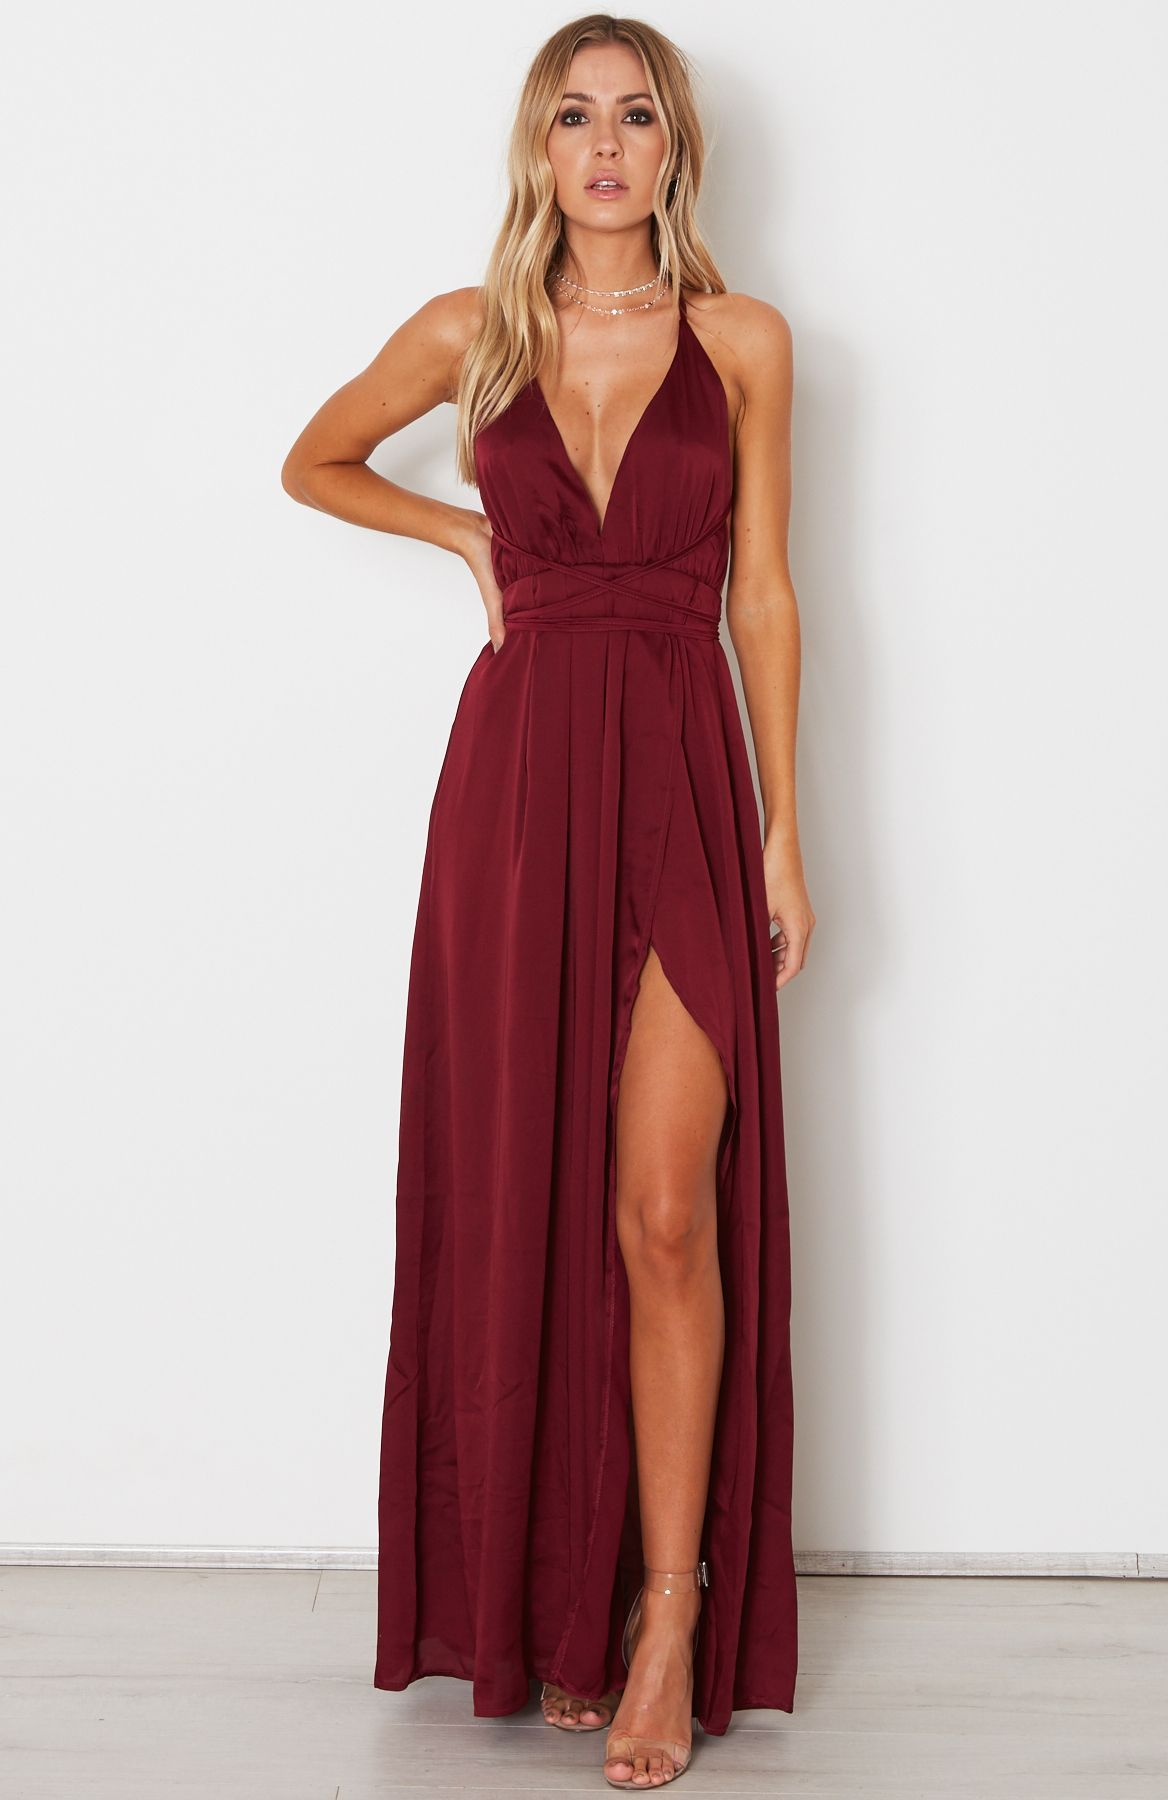 Halter Neck Straps Deep V Neck Burgundy Prom Straps Prom Dresses Burgundy Prom Dress Evening Dresses Prom